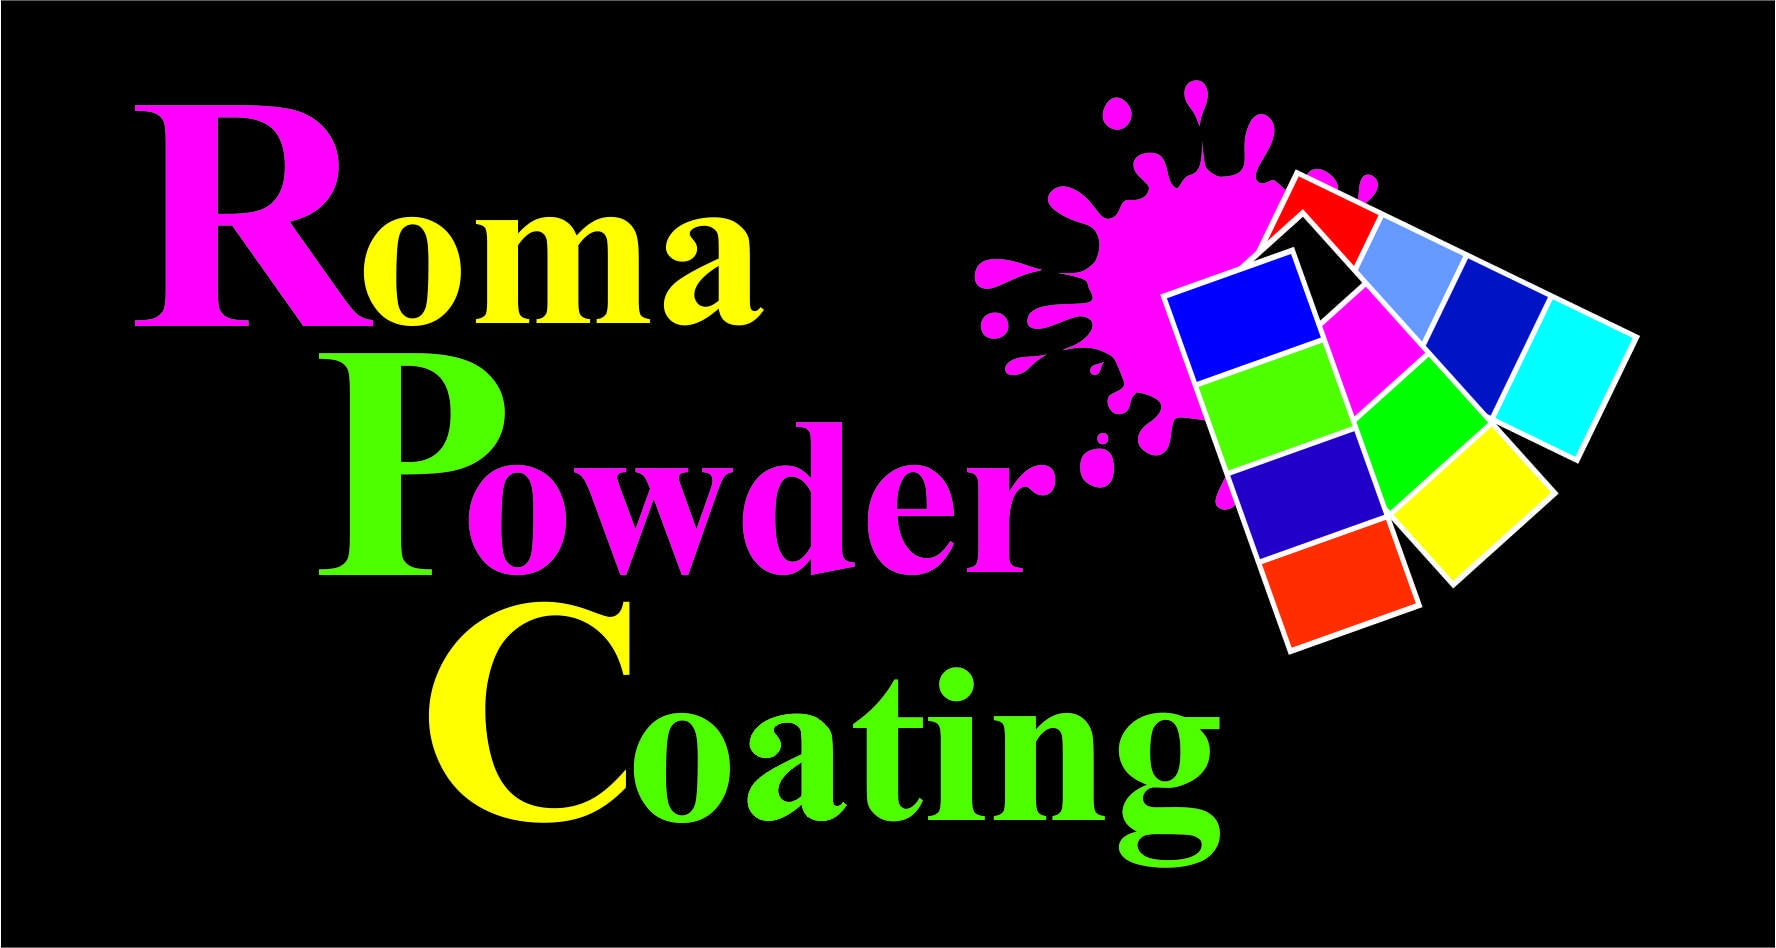 Roma Powder Coating | Abrasive Blasting & Metal Finishing